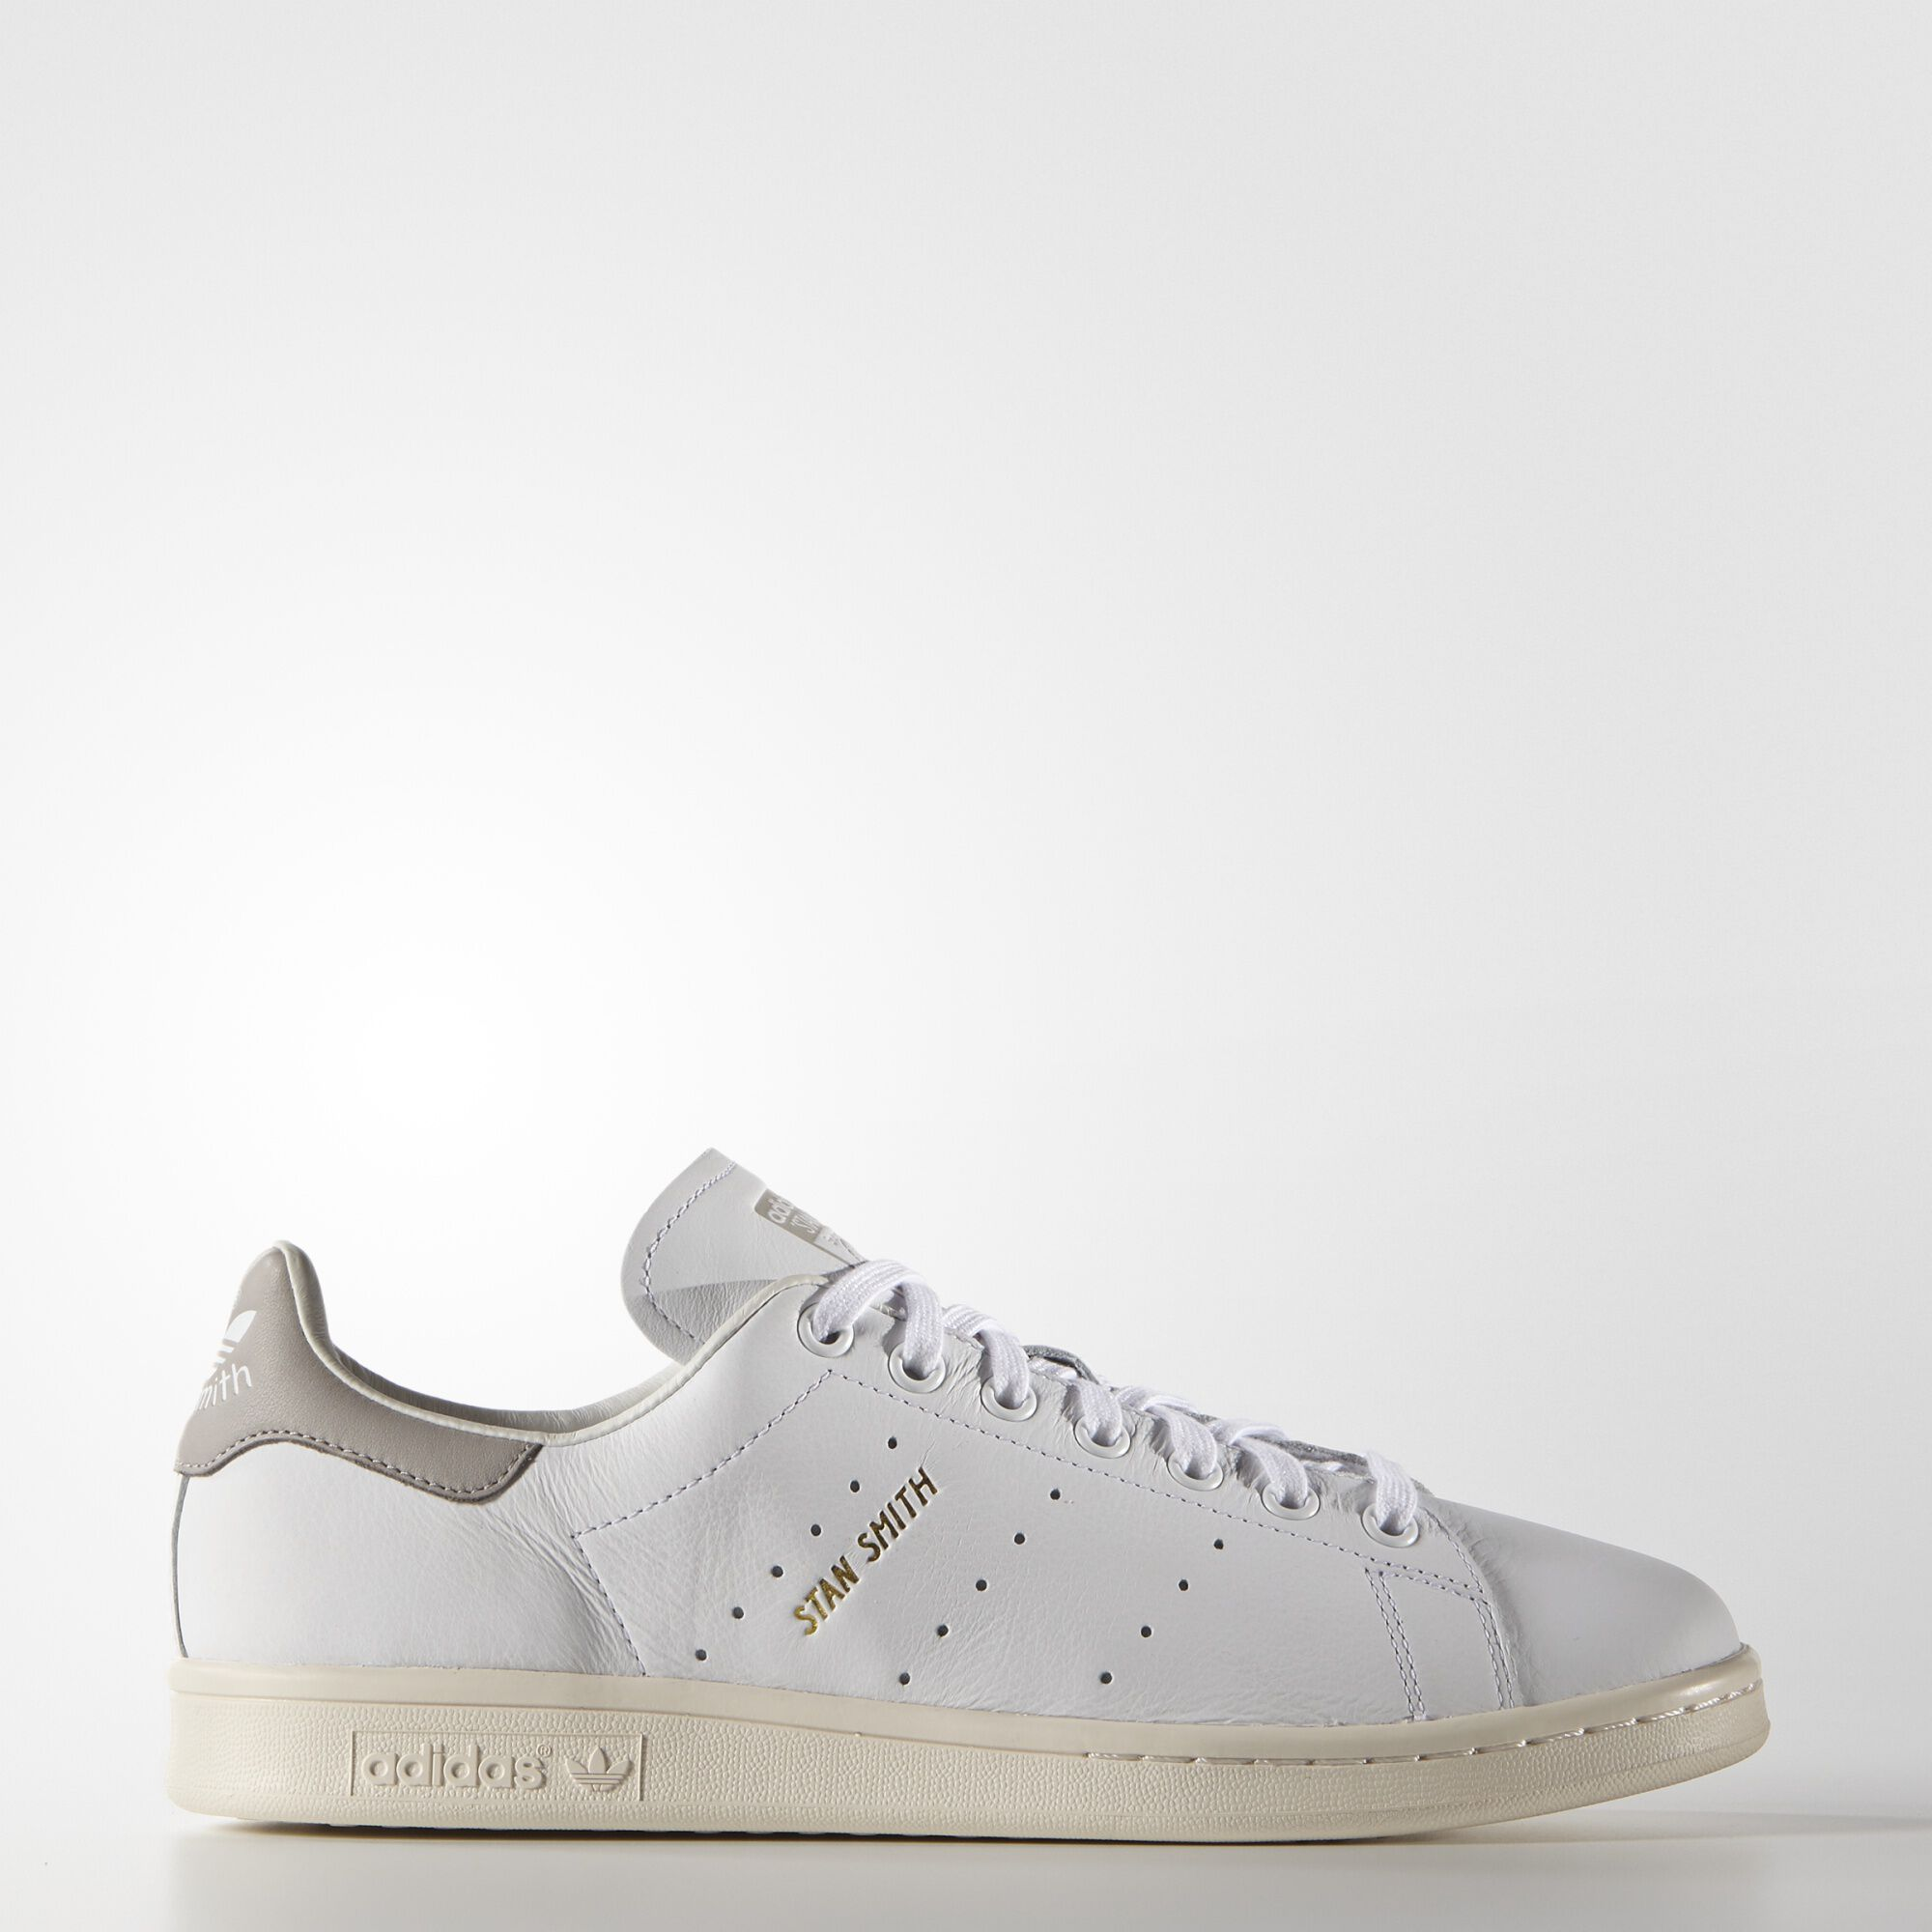 adidas stan smith shoes white adidas us. Black Bedroom Furniture Sets. Home Design Ideas